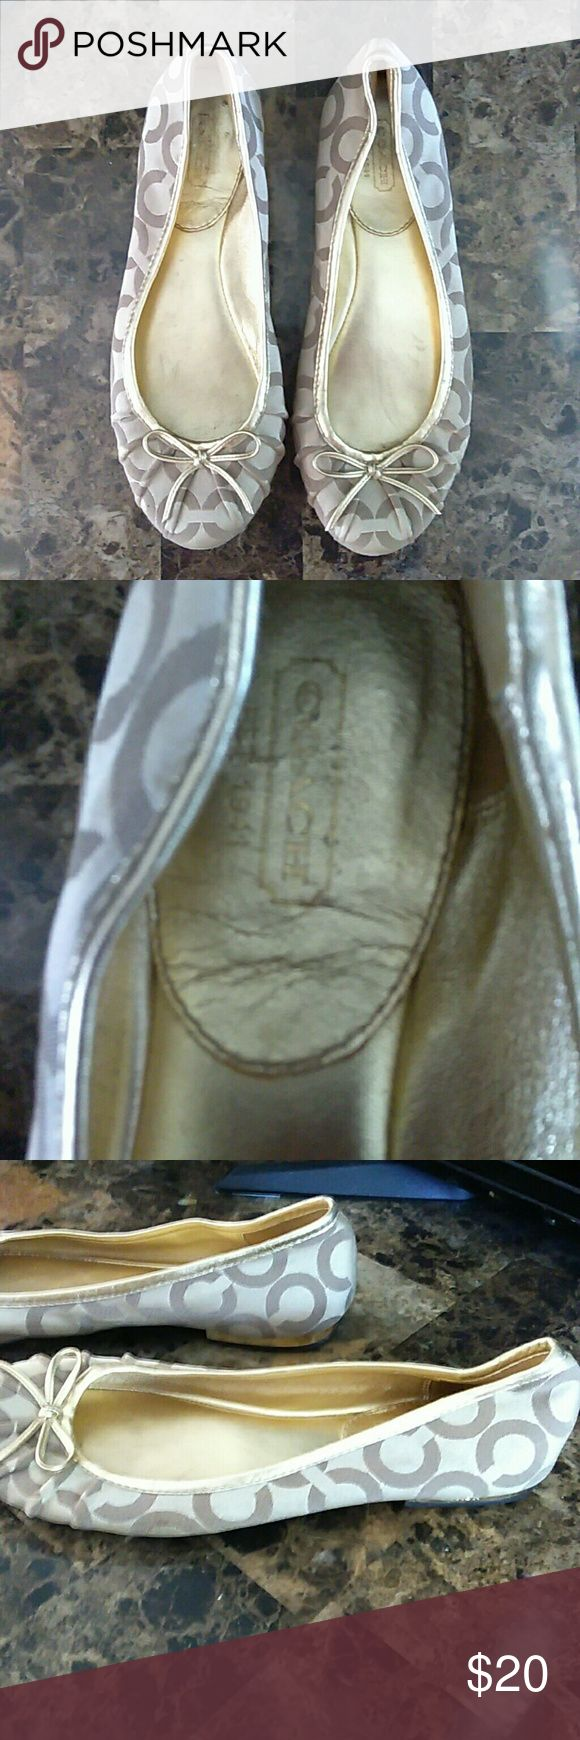 Beautiful Coach Flats ~ size 7 Beautiful coach flats size 7.  These are a reposh.  Bought them and unfortunately did not fit me.  They are SO CUTE!  They do have wear on the bottom, but shoes are in great condition! Coach Shoes